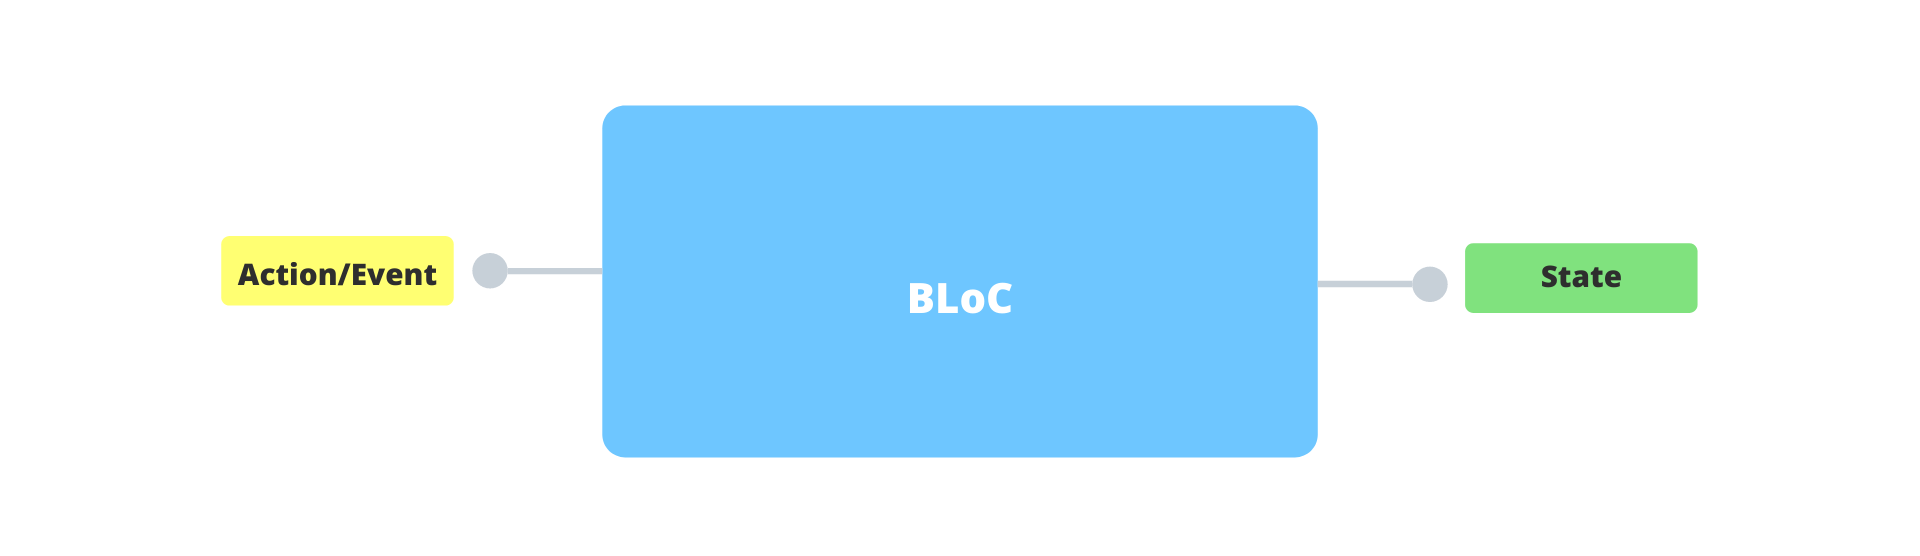 bloc-one-input-one-output